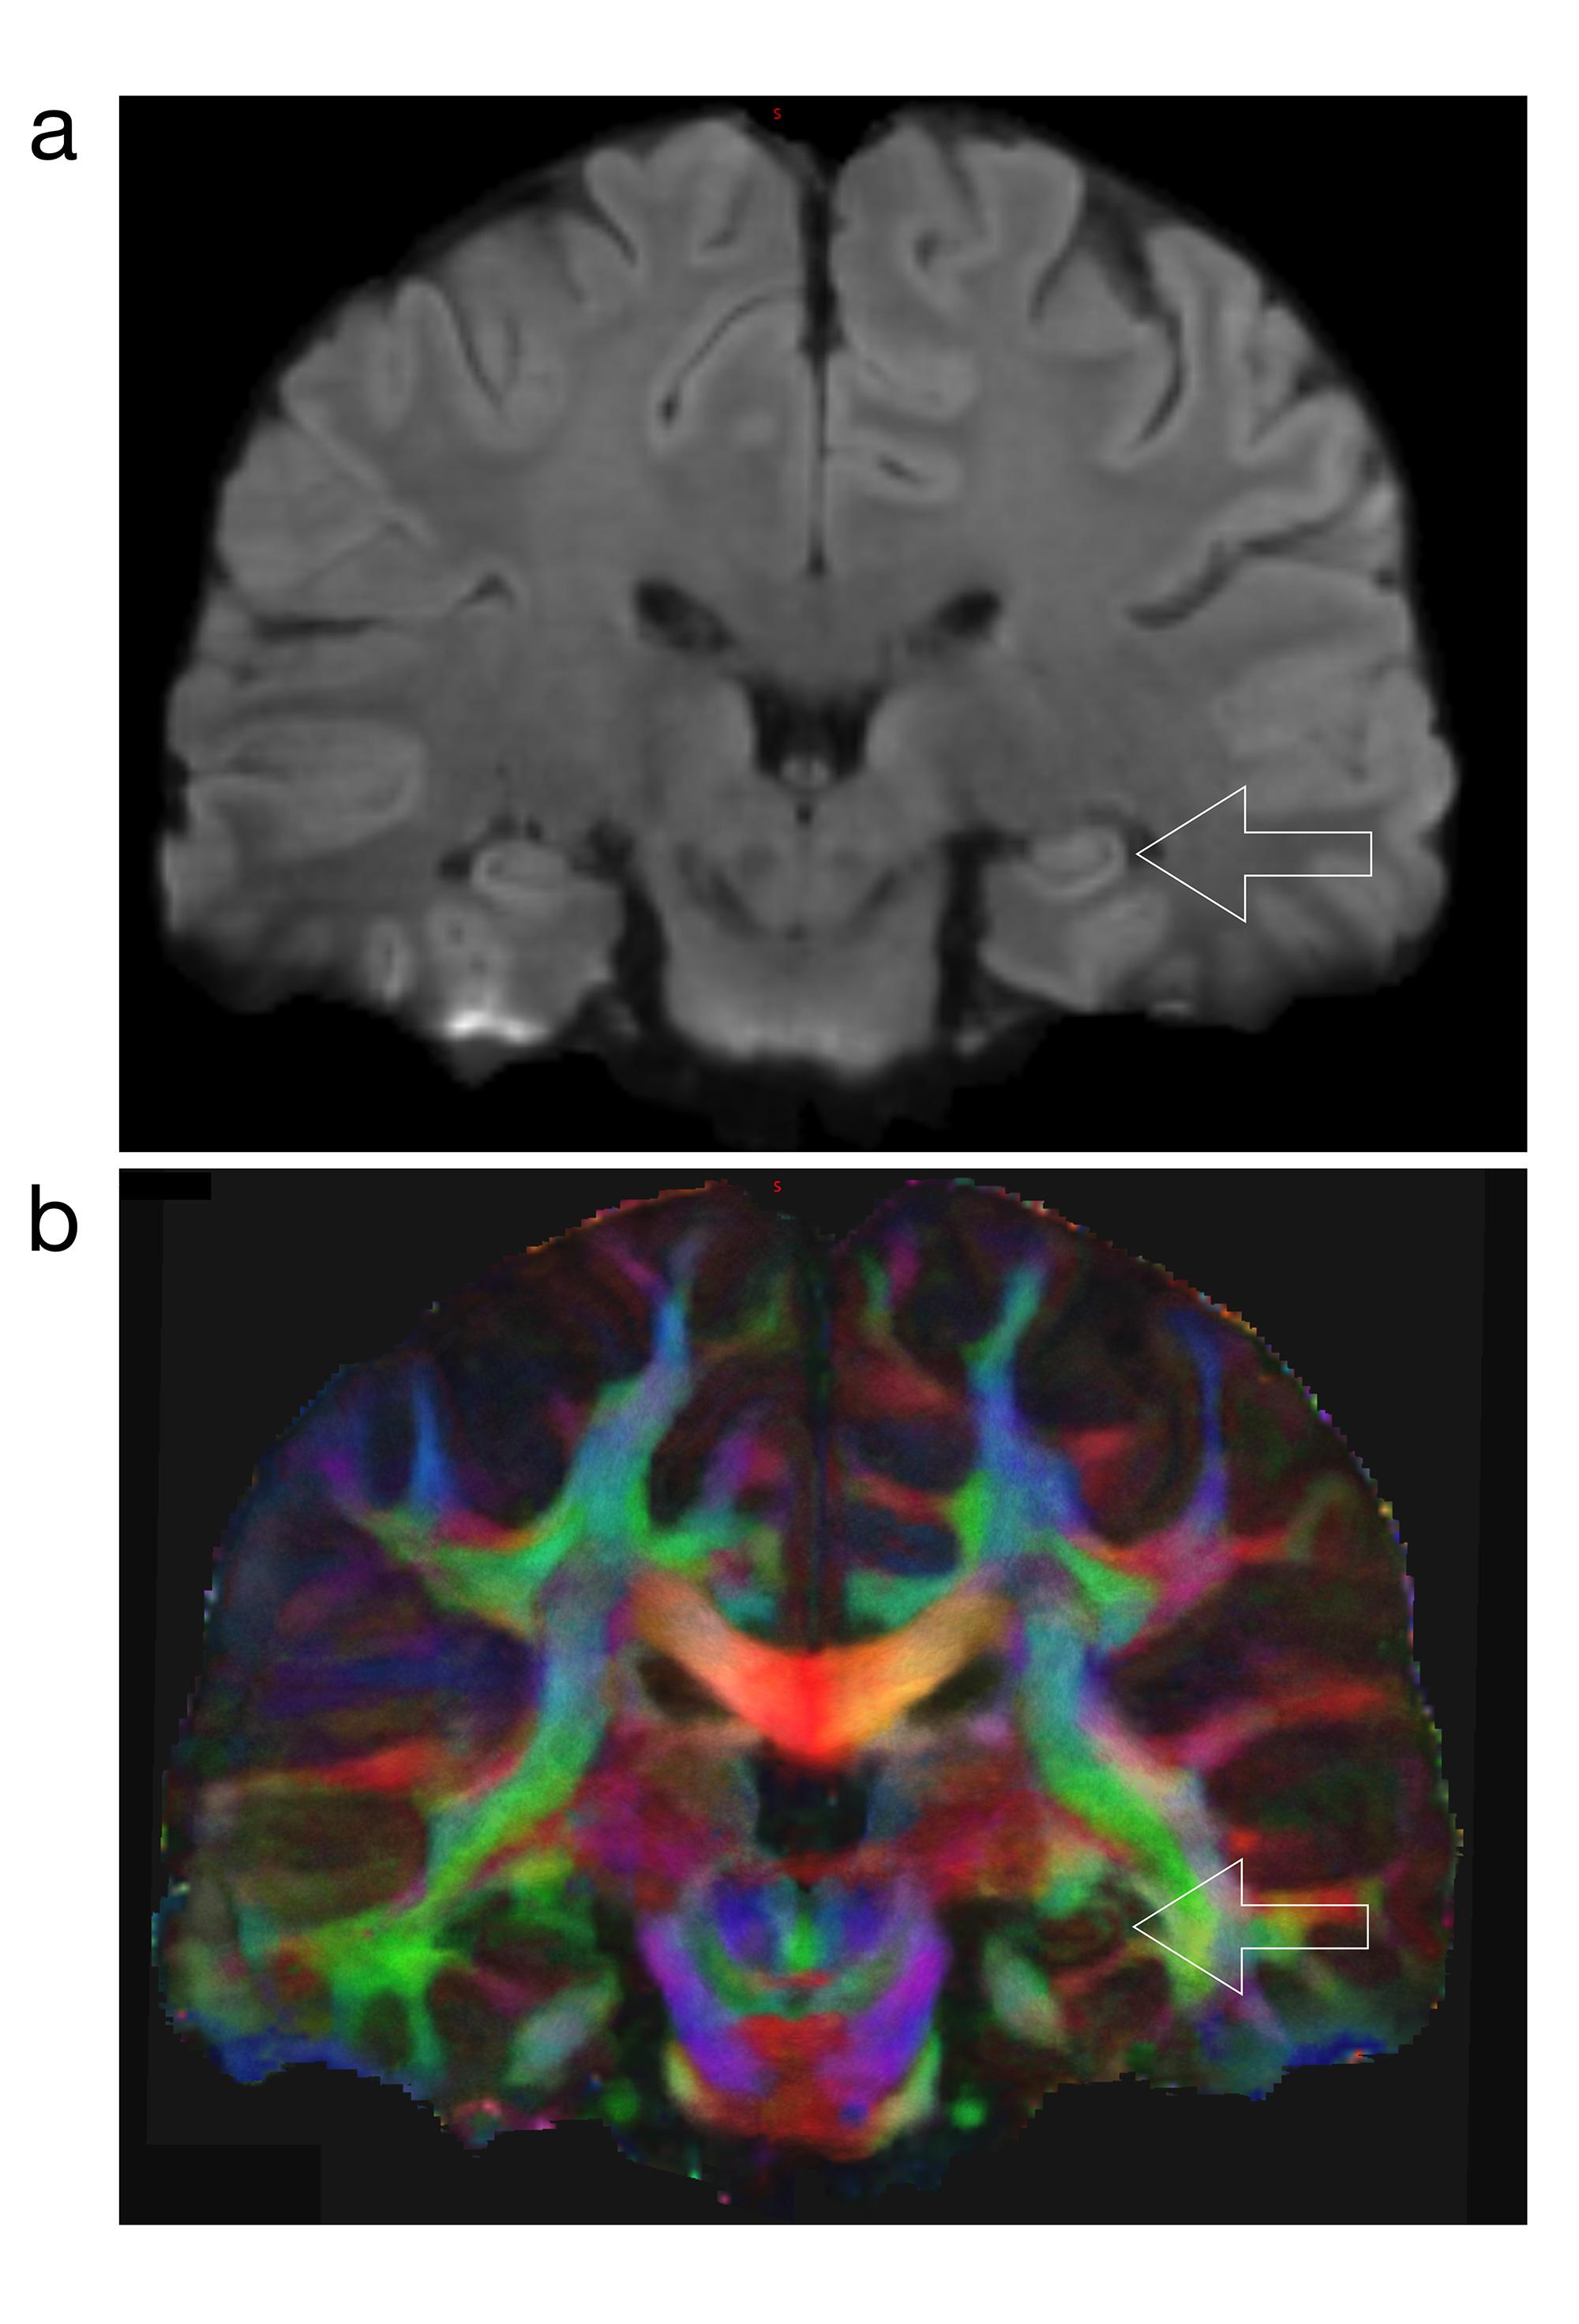 These high-resolution diffusion-weighted magnetic resonance images show thestructural connection to the hippocampus, which is the most important brain region involved in memory. The lower image  is color-coded, with red indicating left-rightstructural c